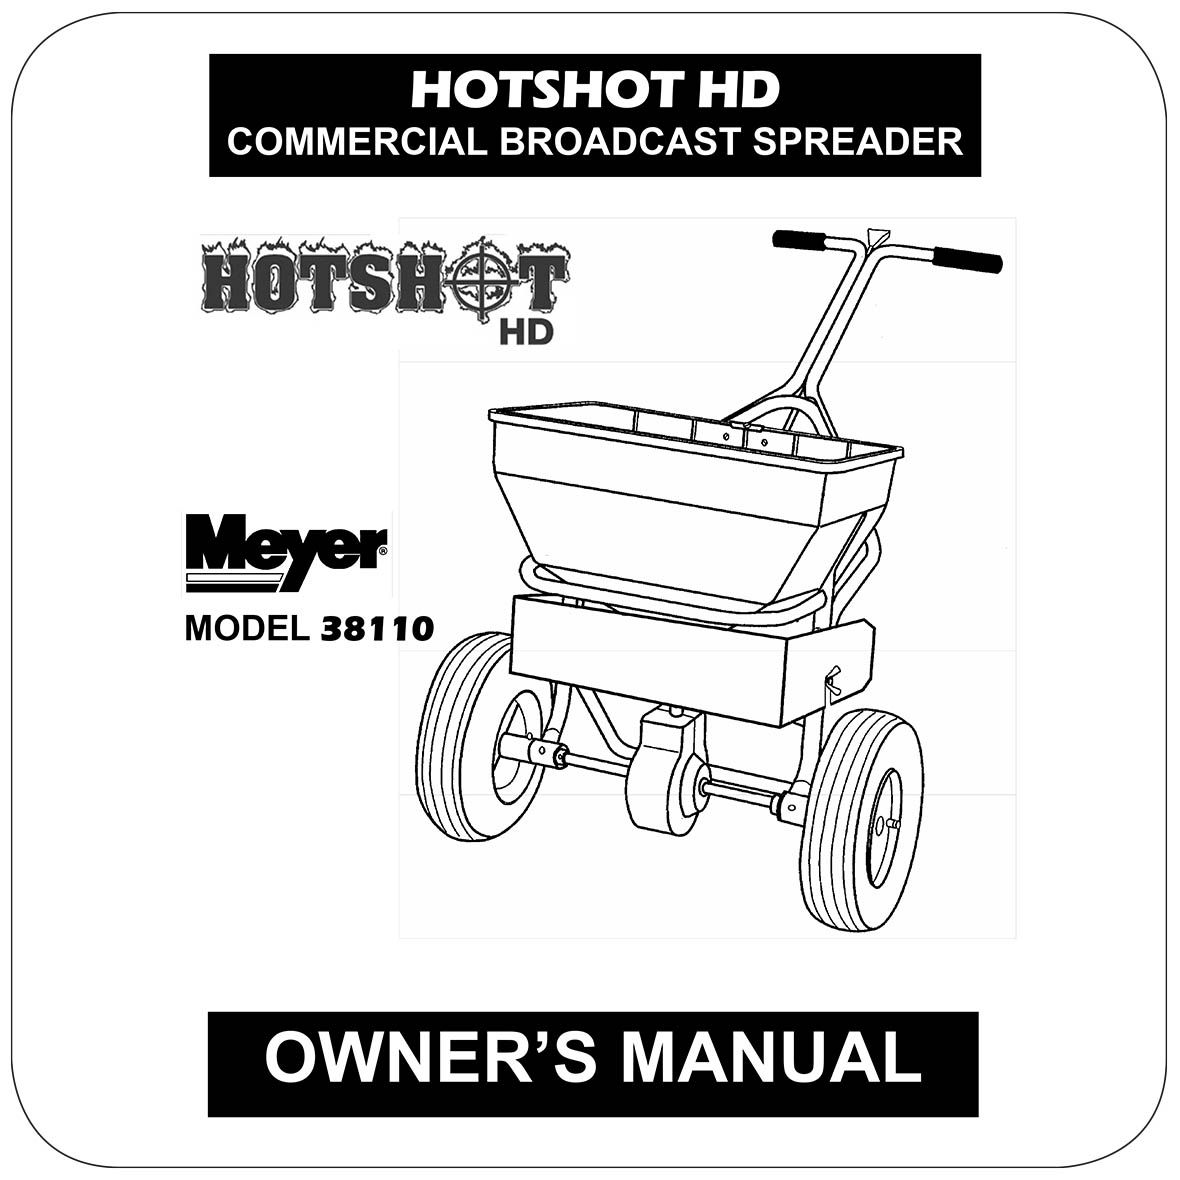 Owners Manual HotShot 70HD - 38110